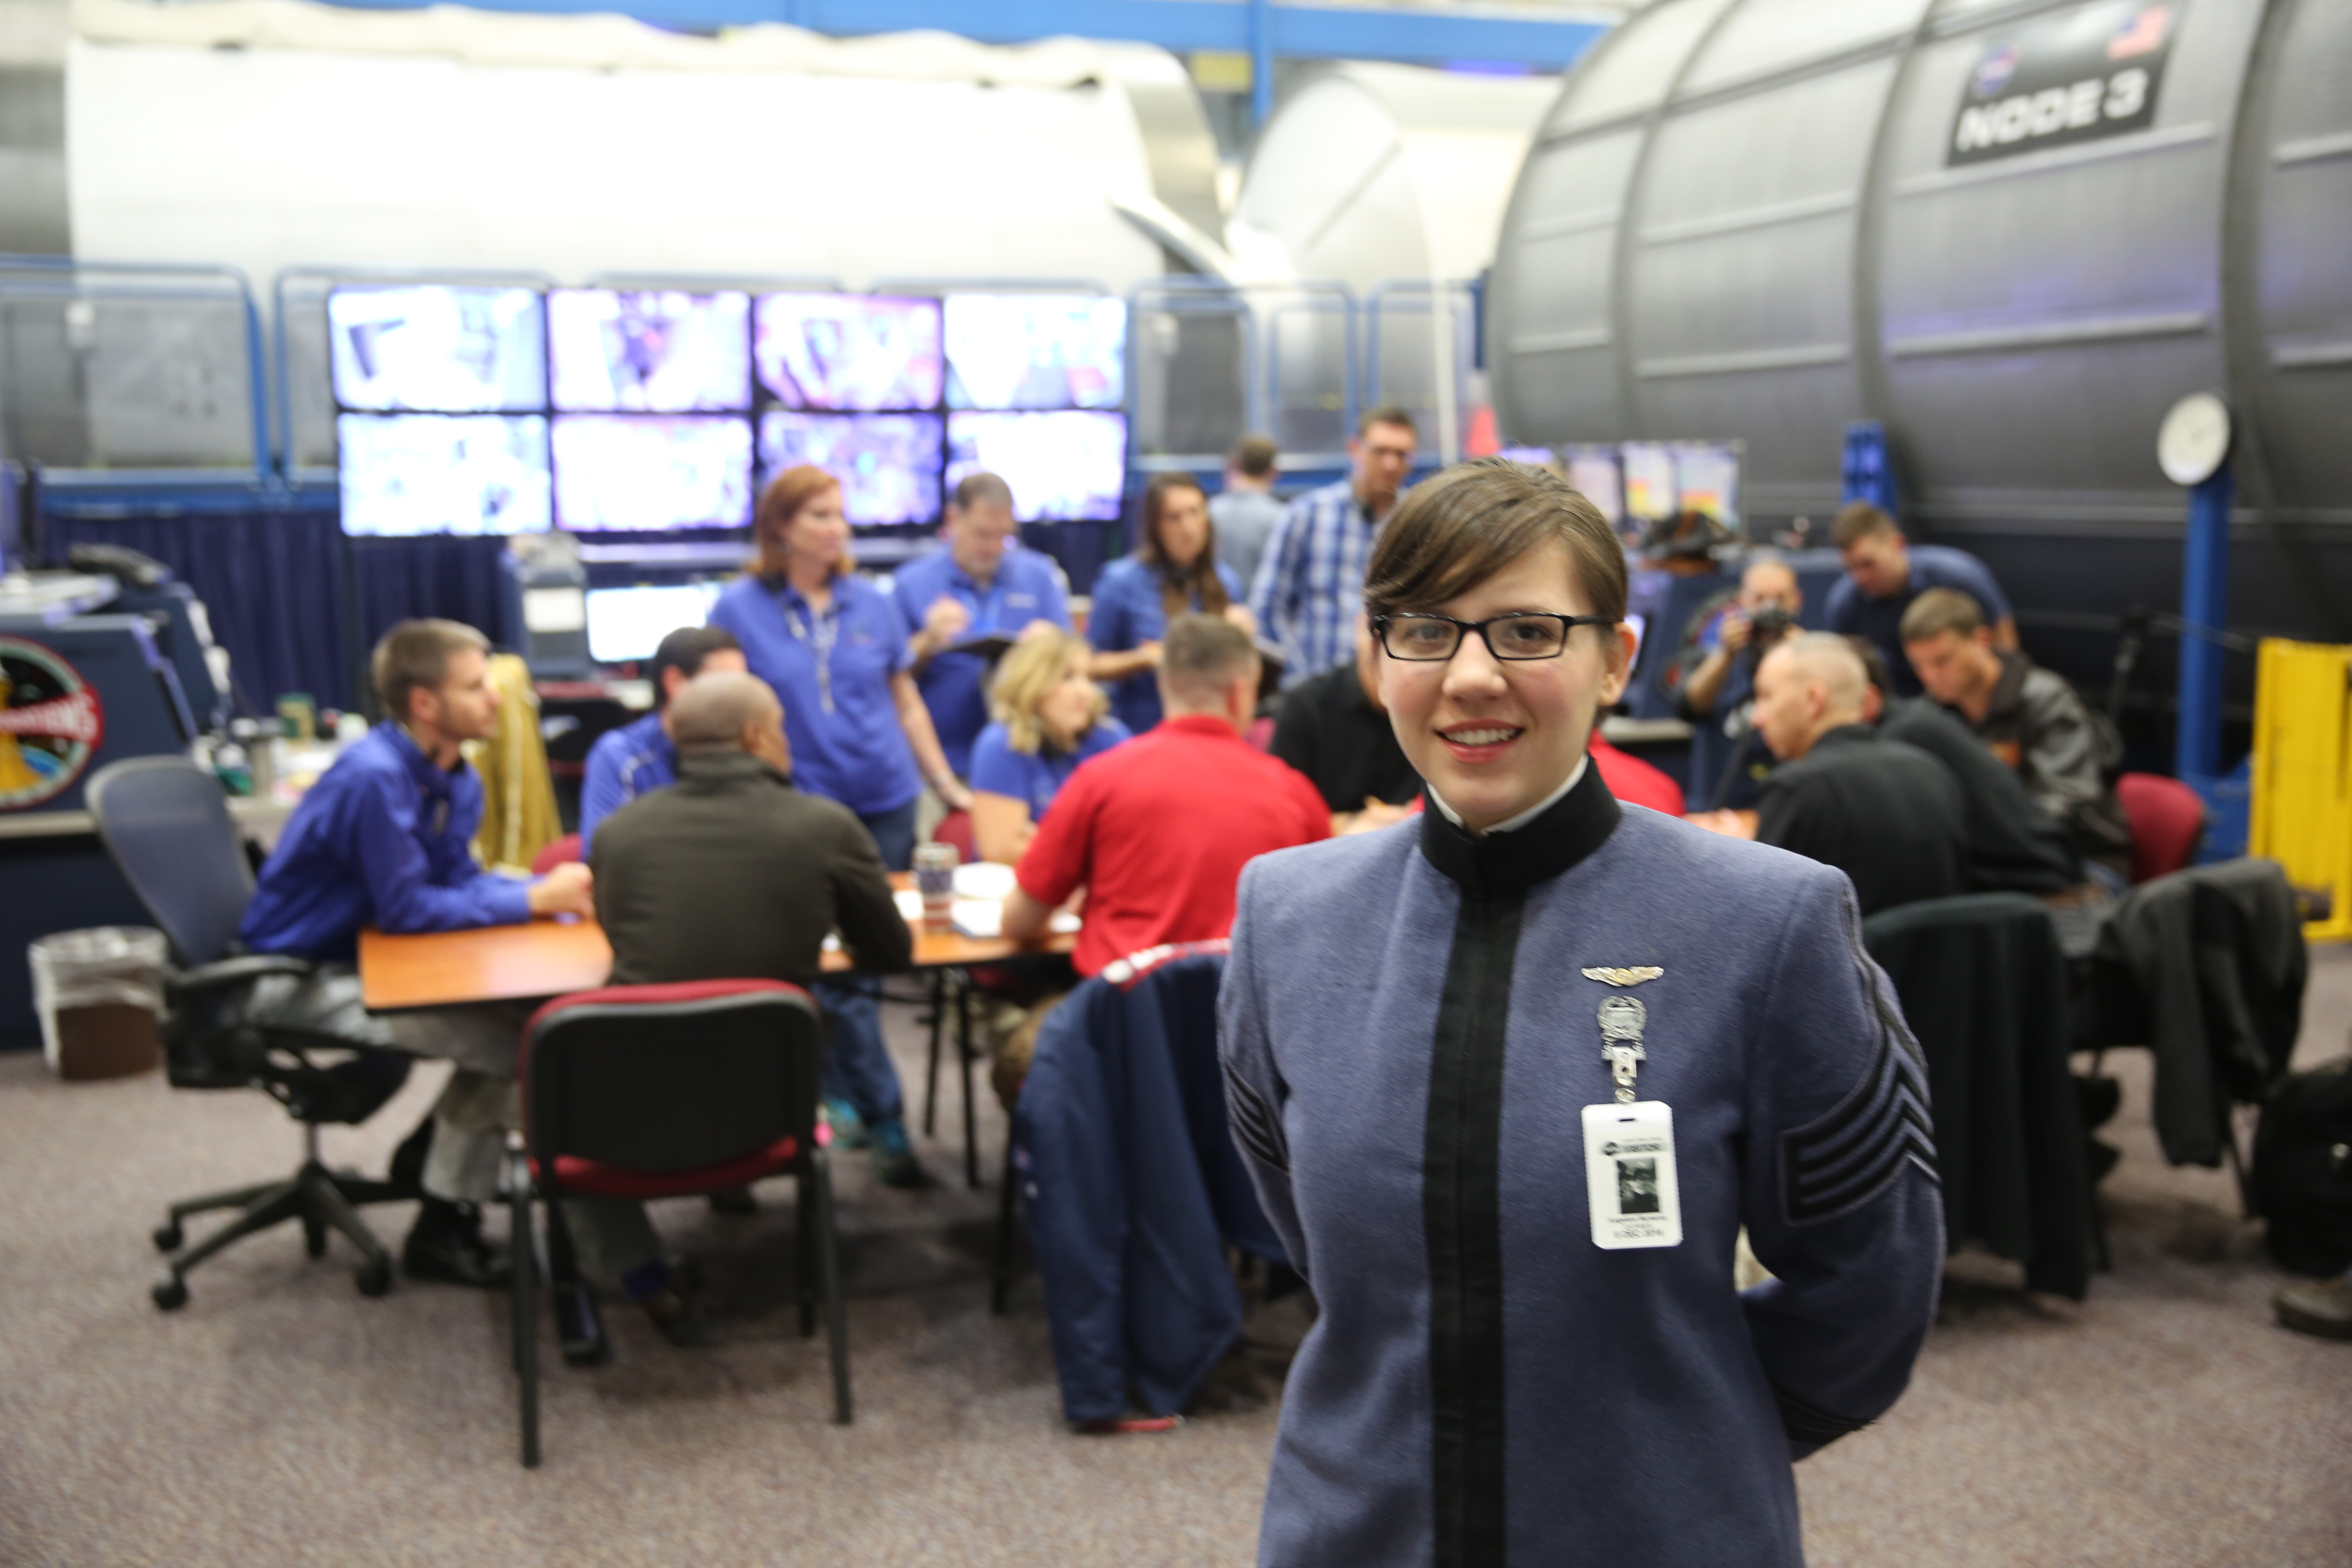 Cadet Angelica McNerny with Citadel Space Star